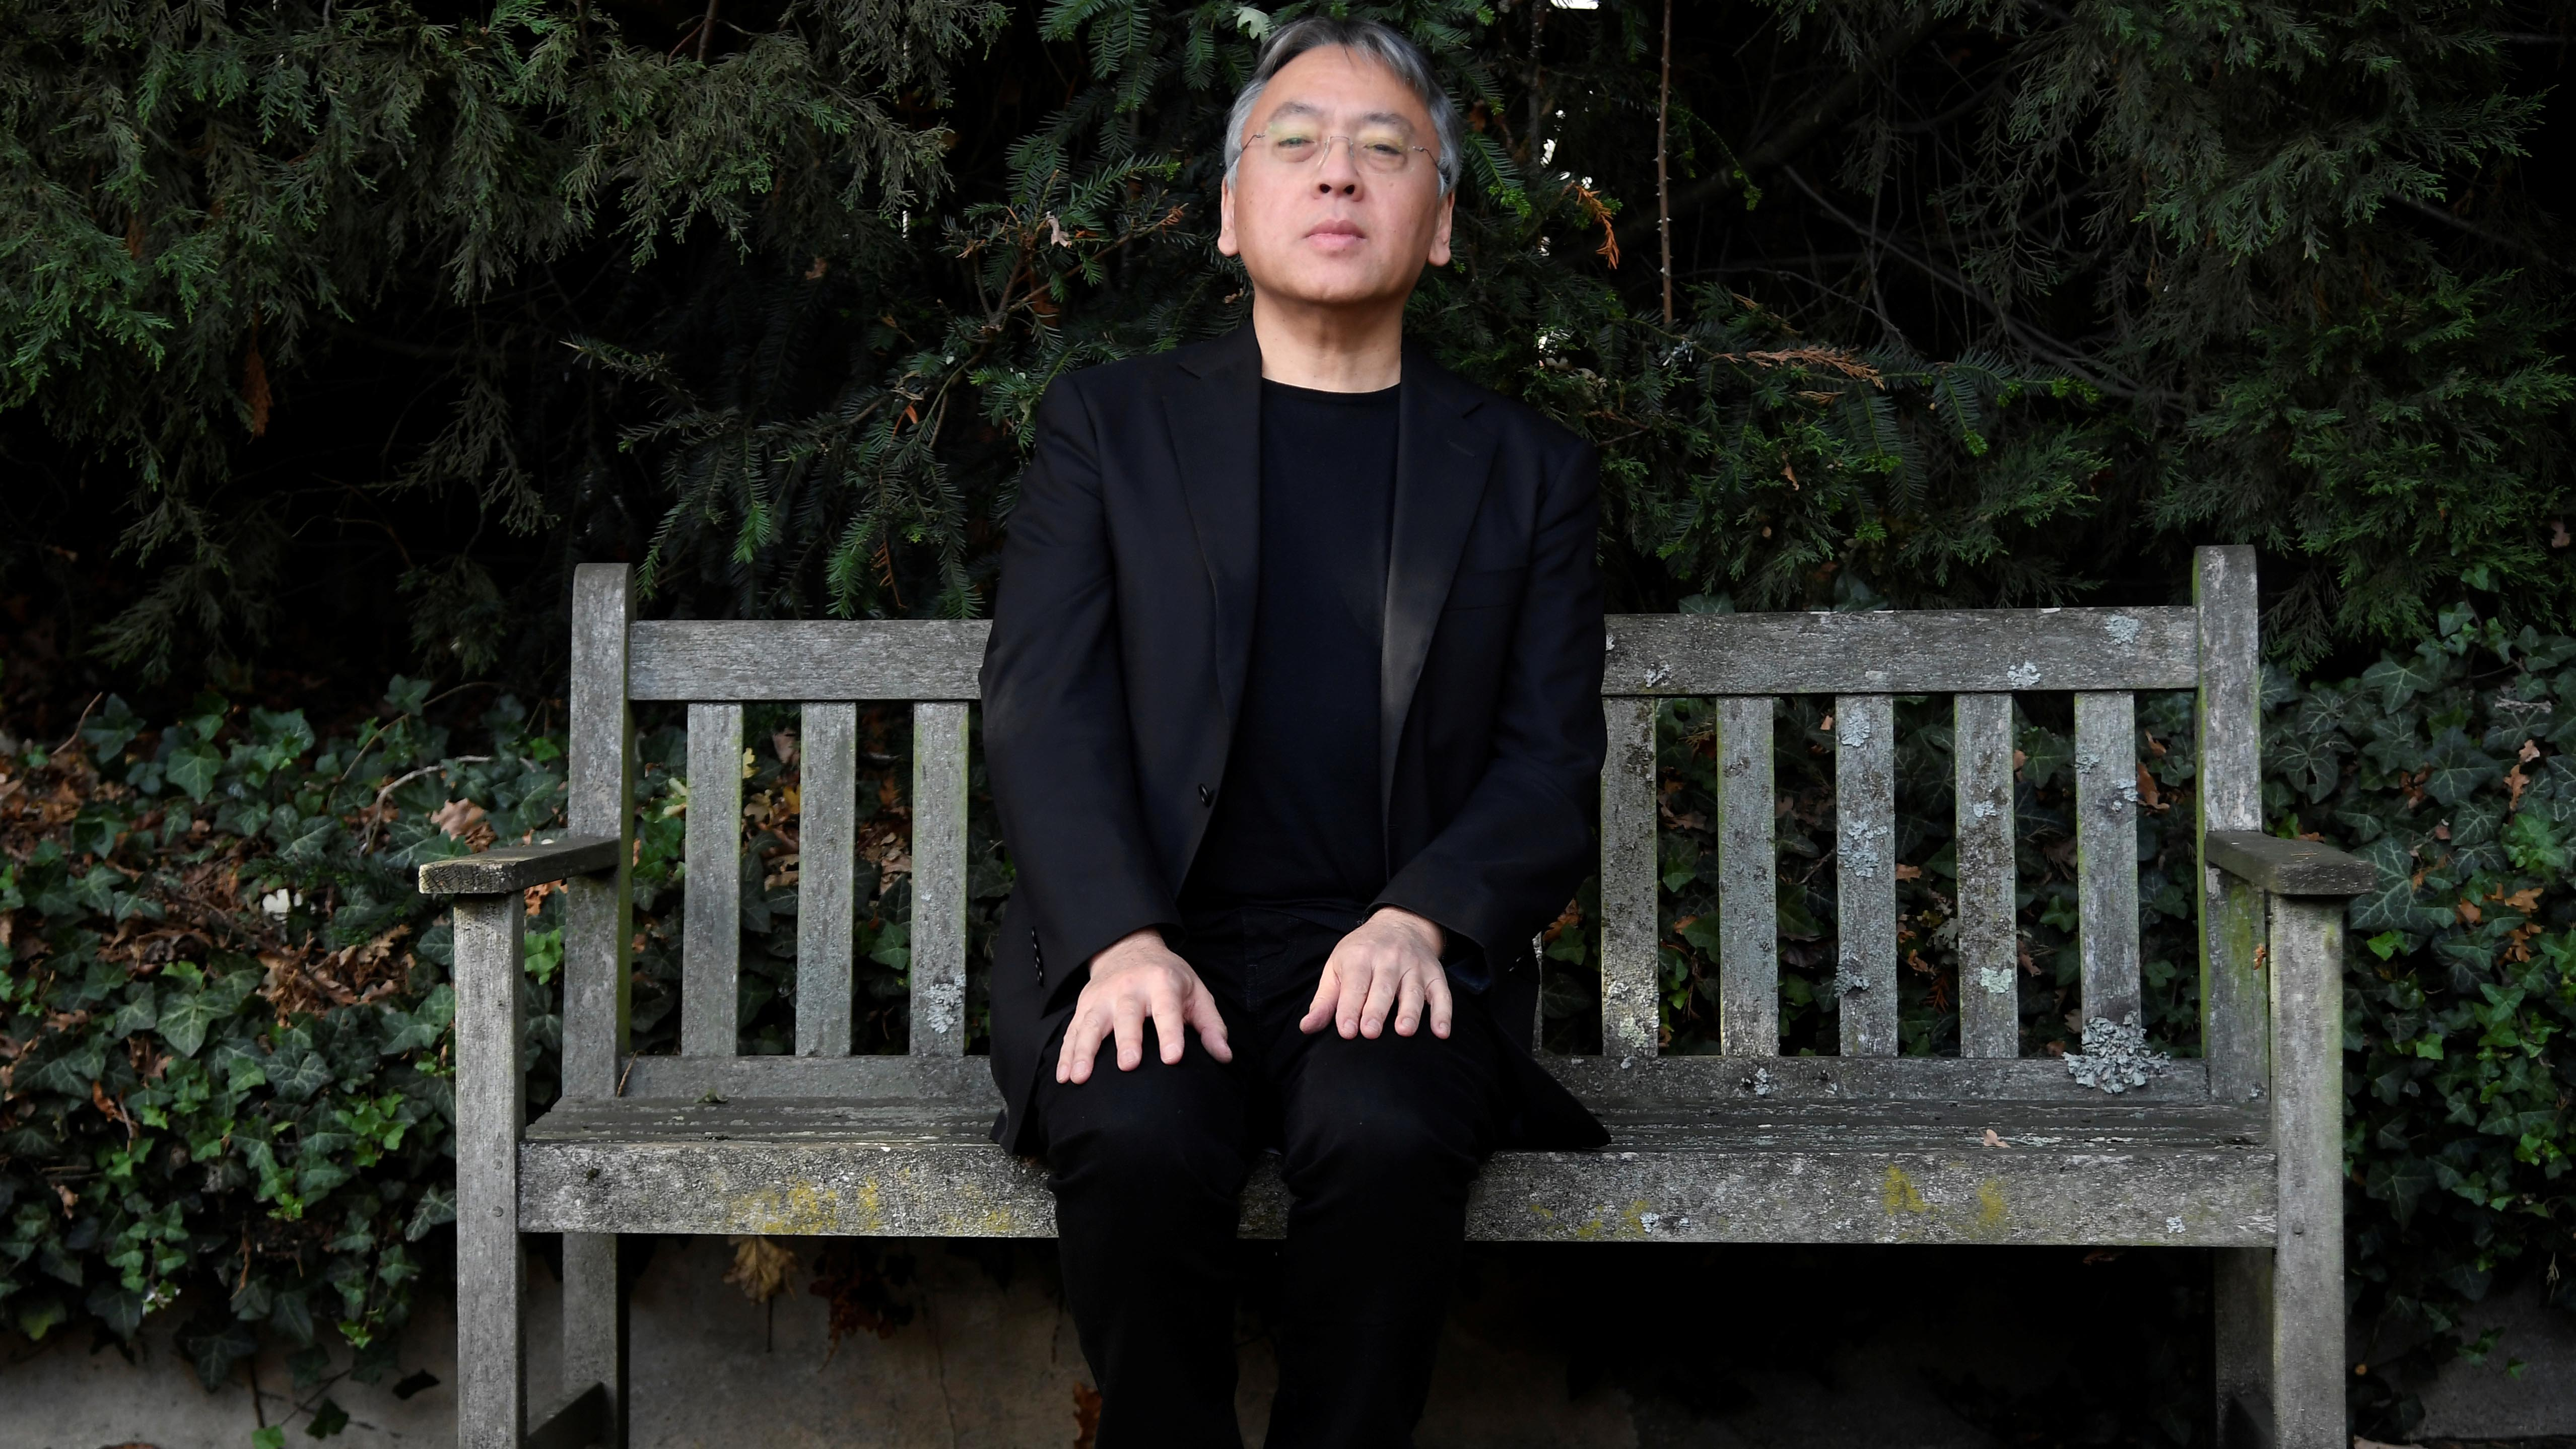 Author Kazuo Ishiguro poses for the media outside his home, following the announcement that he has won the Nobel Prize for Literature, in London, Britain, on Oct. 5, 2017.